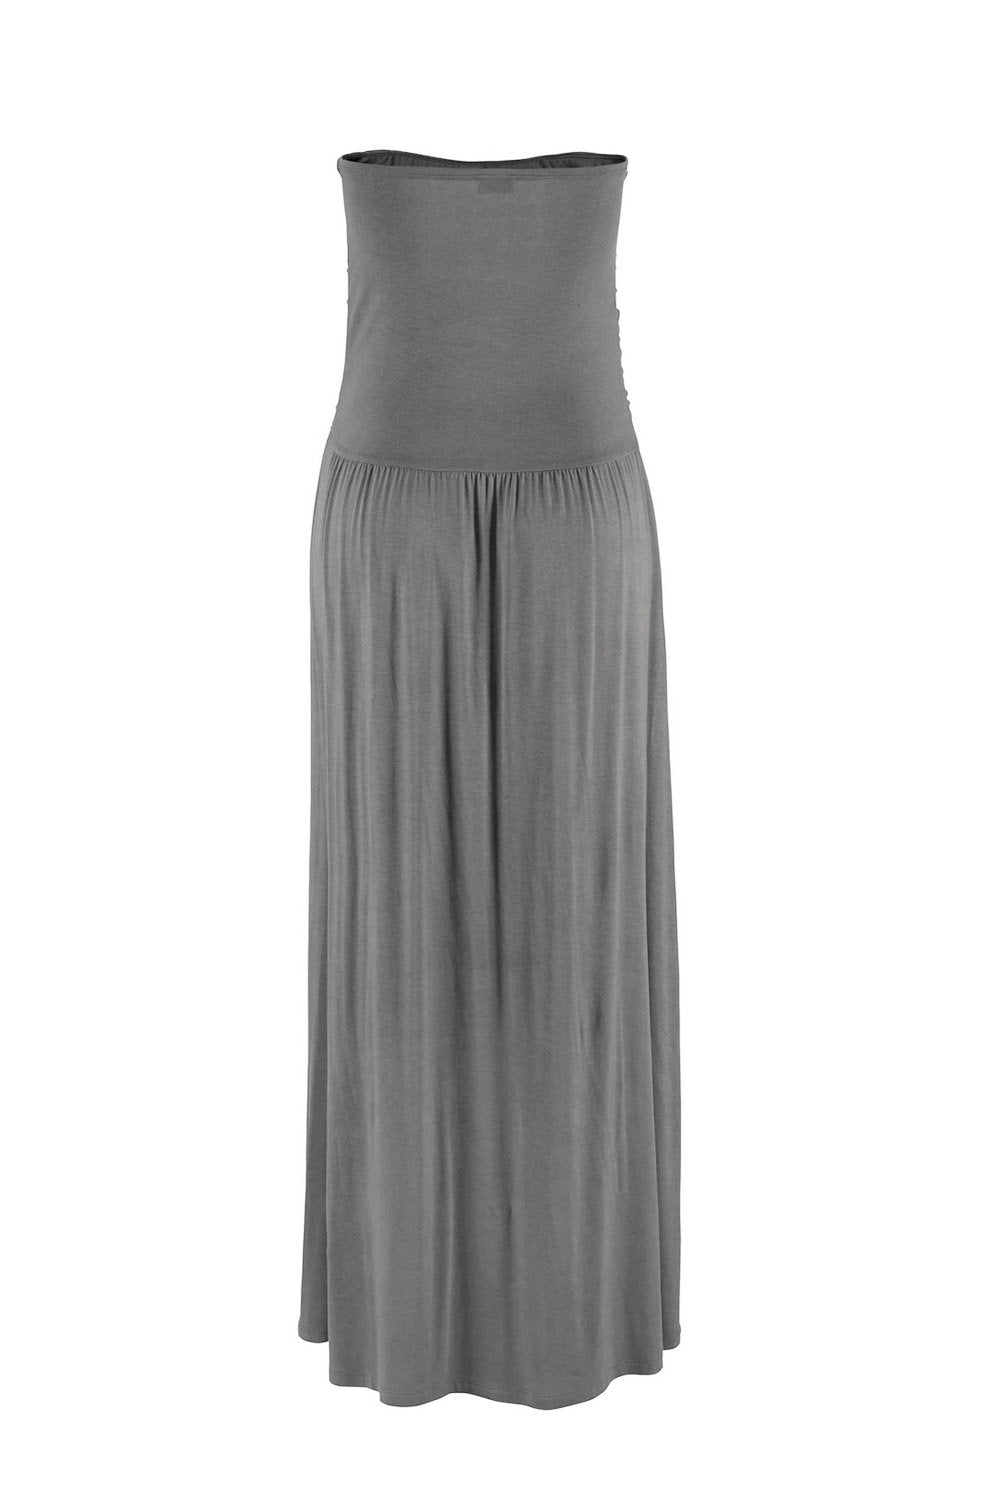 Gray Strapless Bodice Empire Waist Maxi Dress-Dresses, Maxi Dresses-Azura Exchange